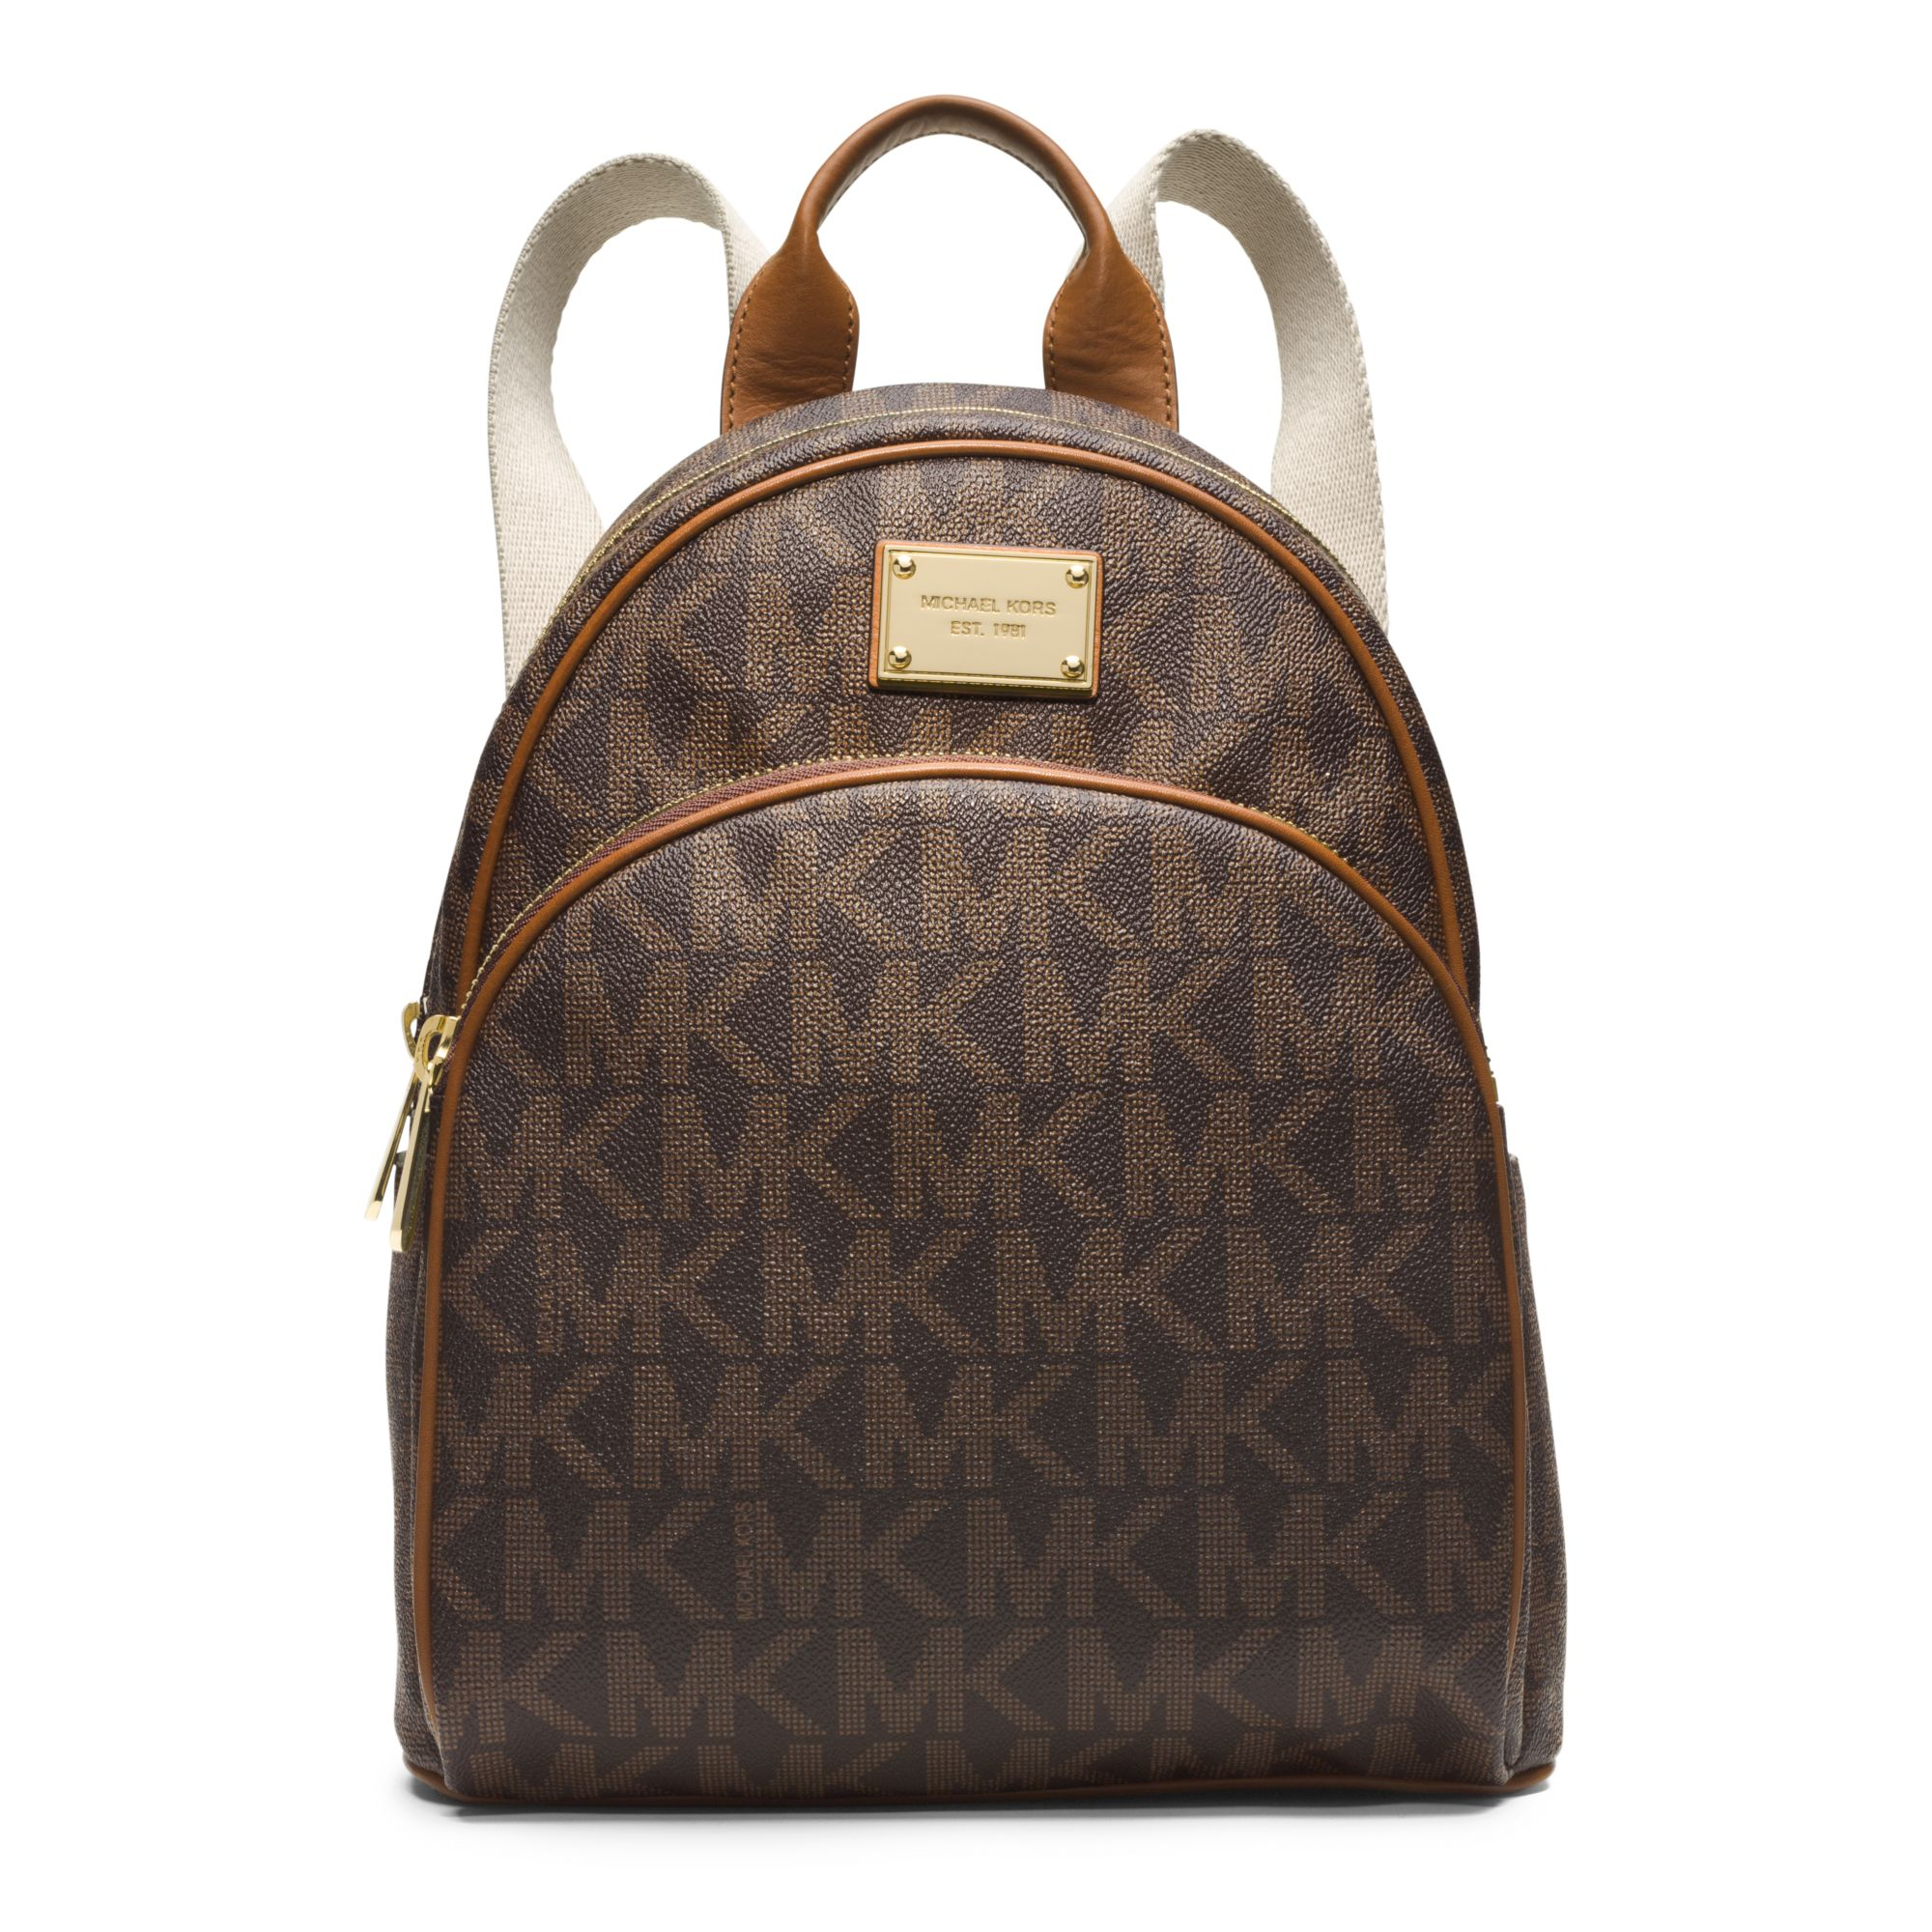 Michael kors Jet Set Travel Logo Small Backpack in Brown | Lyst